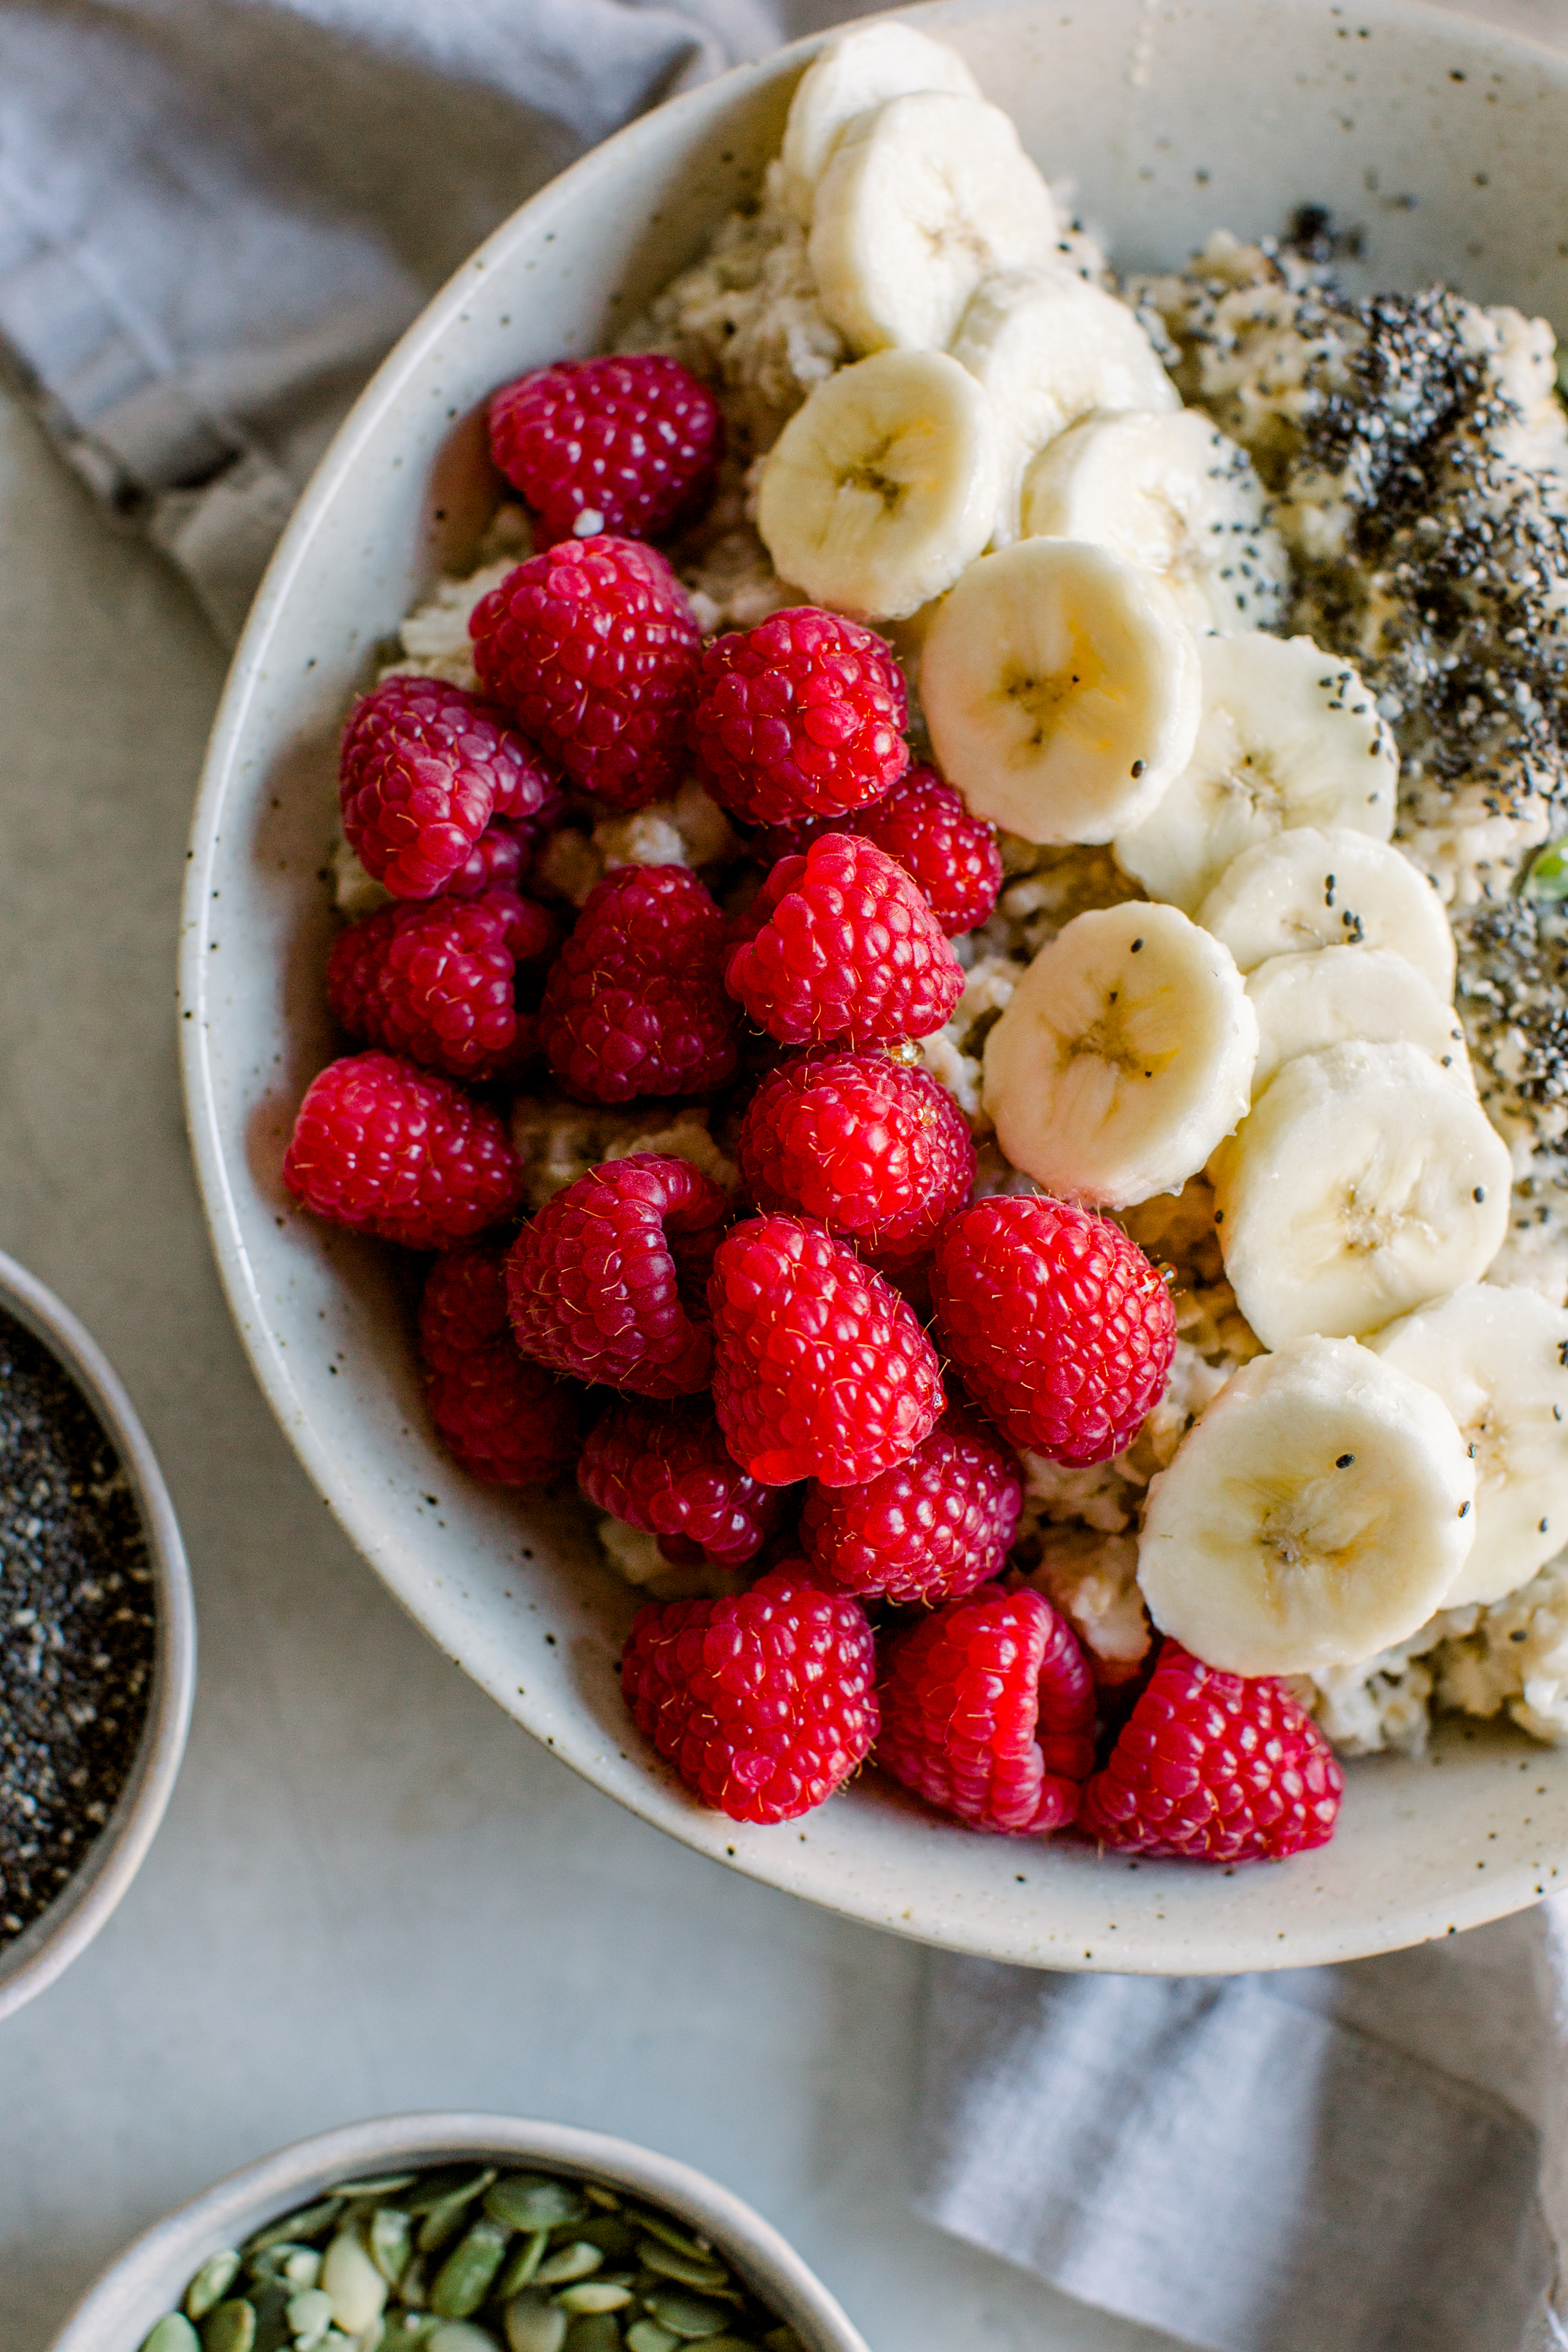 Eat Like an Athlete with These Healthy Berry Recipes